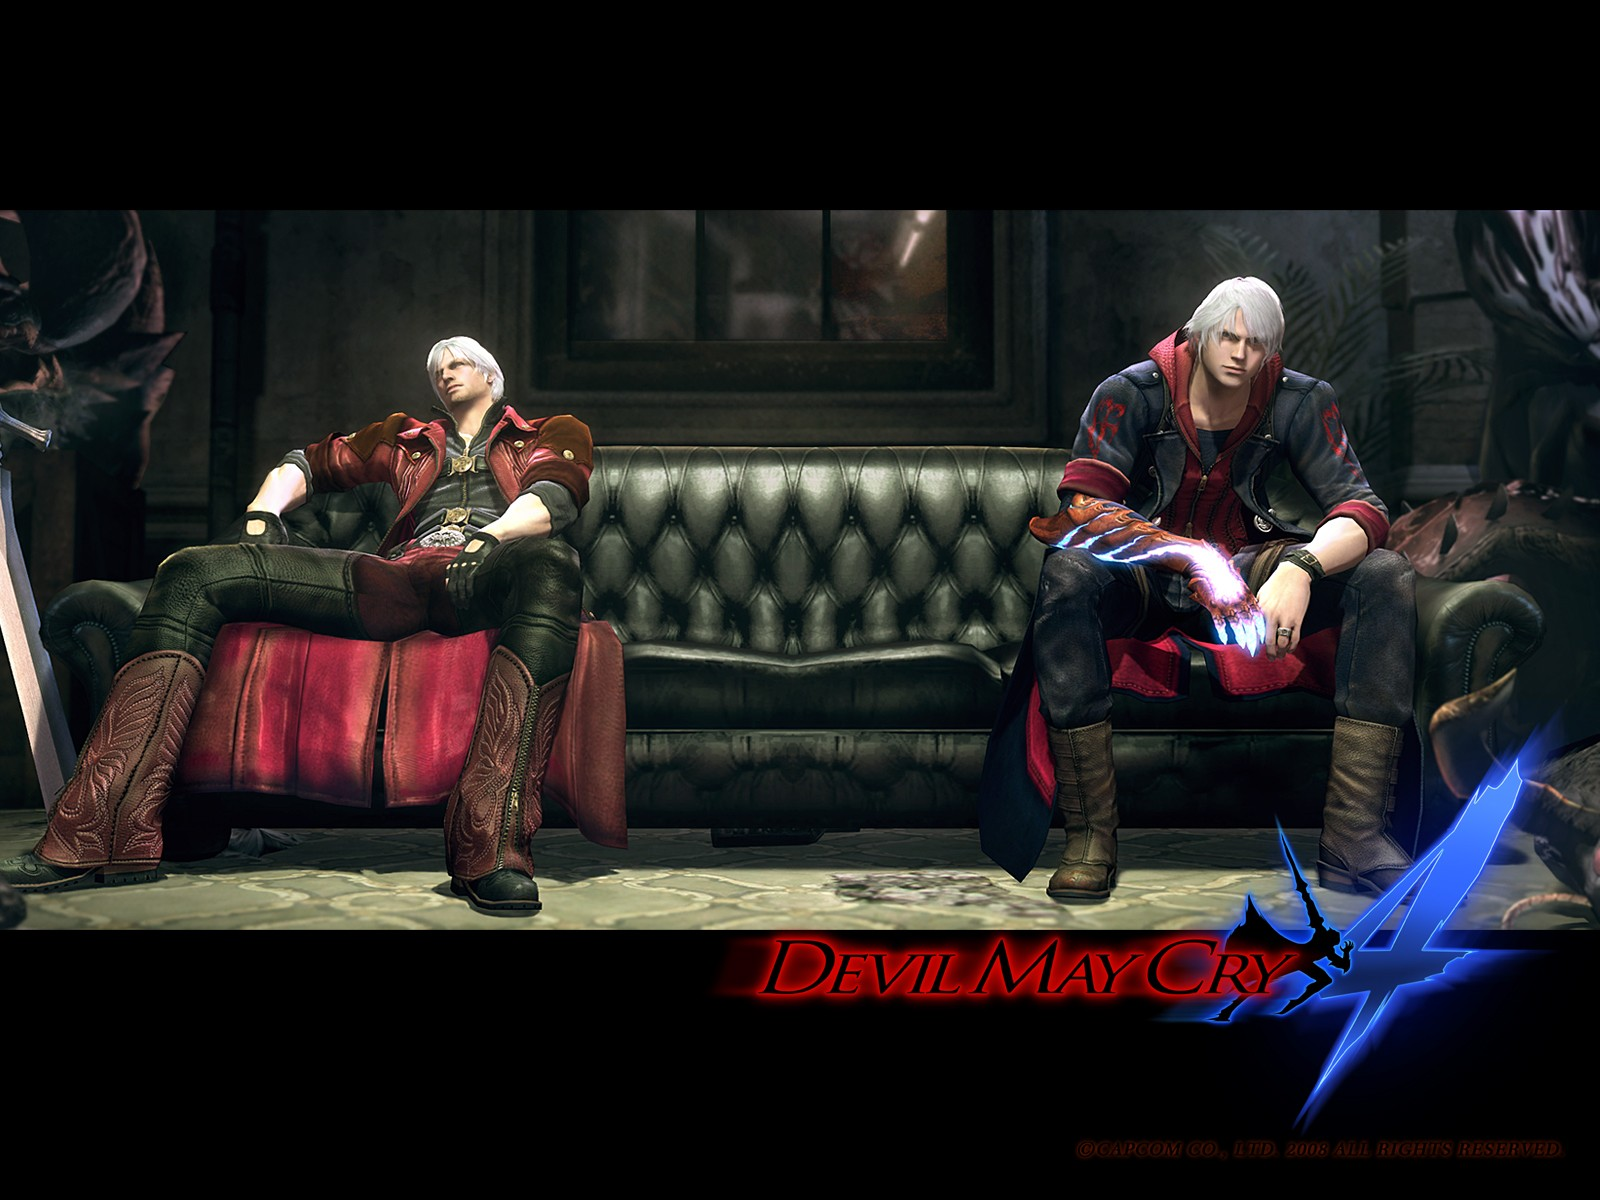 Devil may cry 4 art picture unlocked mission dante nero together sofa dante and nero fight